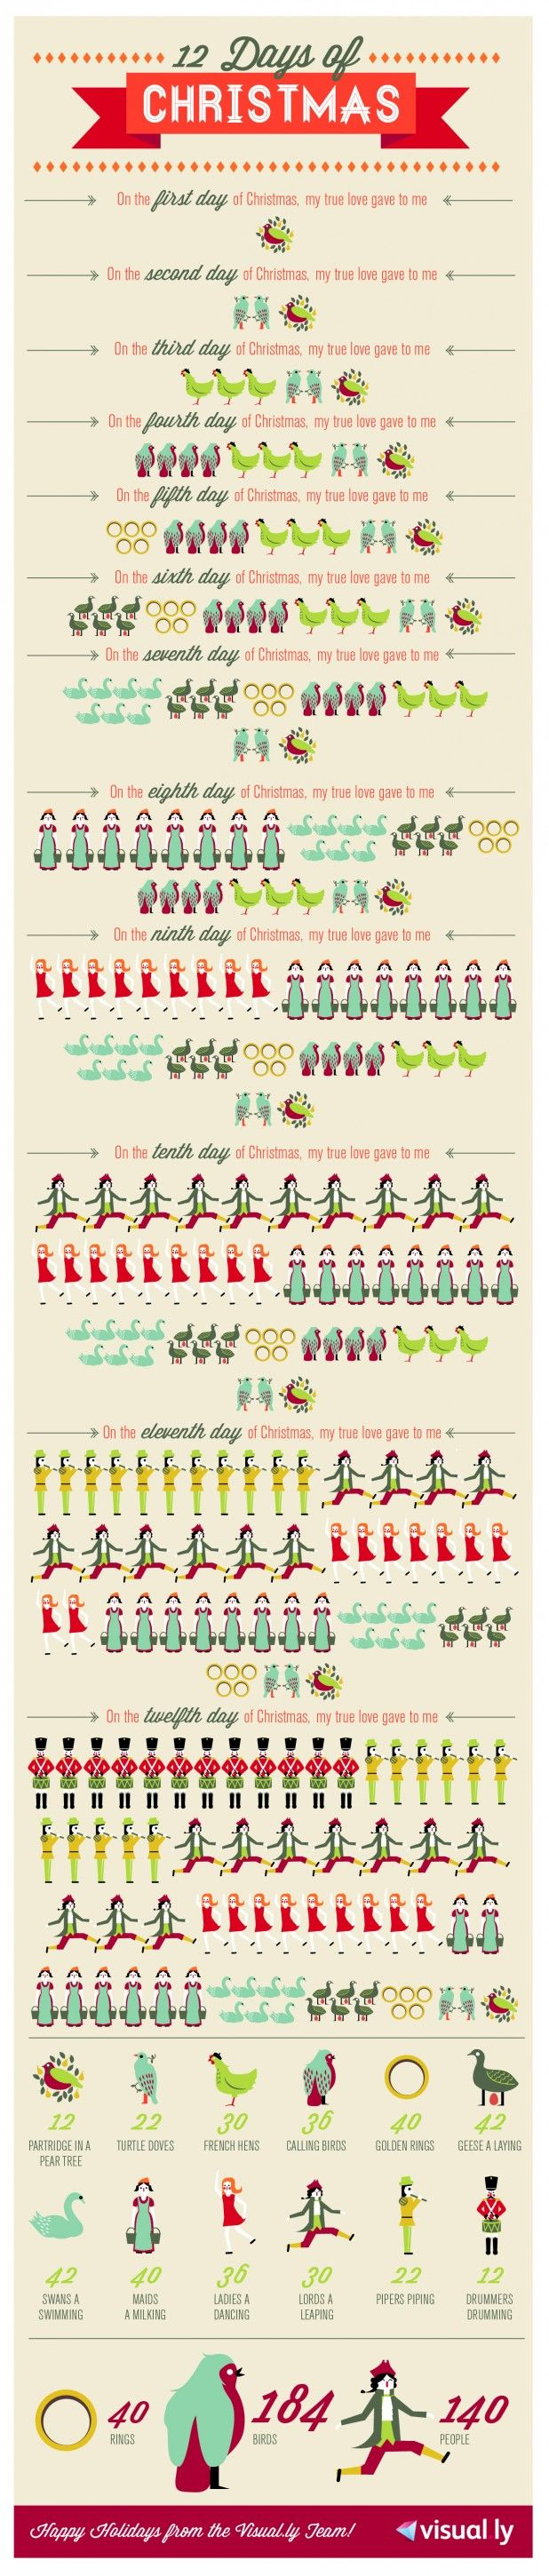 12 Days of Christmas - looong illustrated version of the song lyrics!